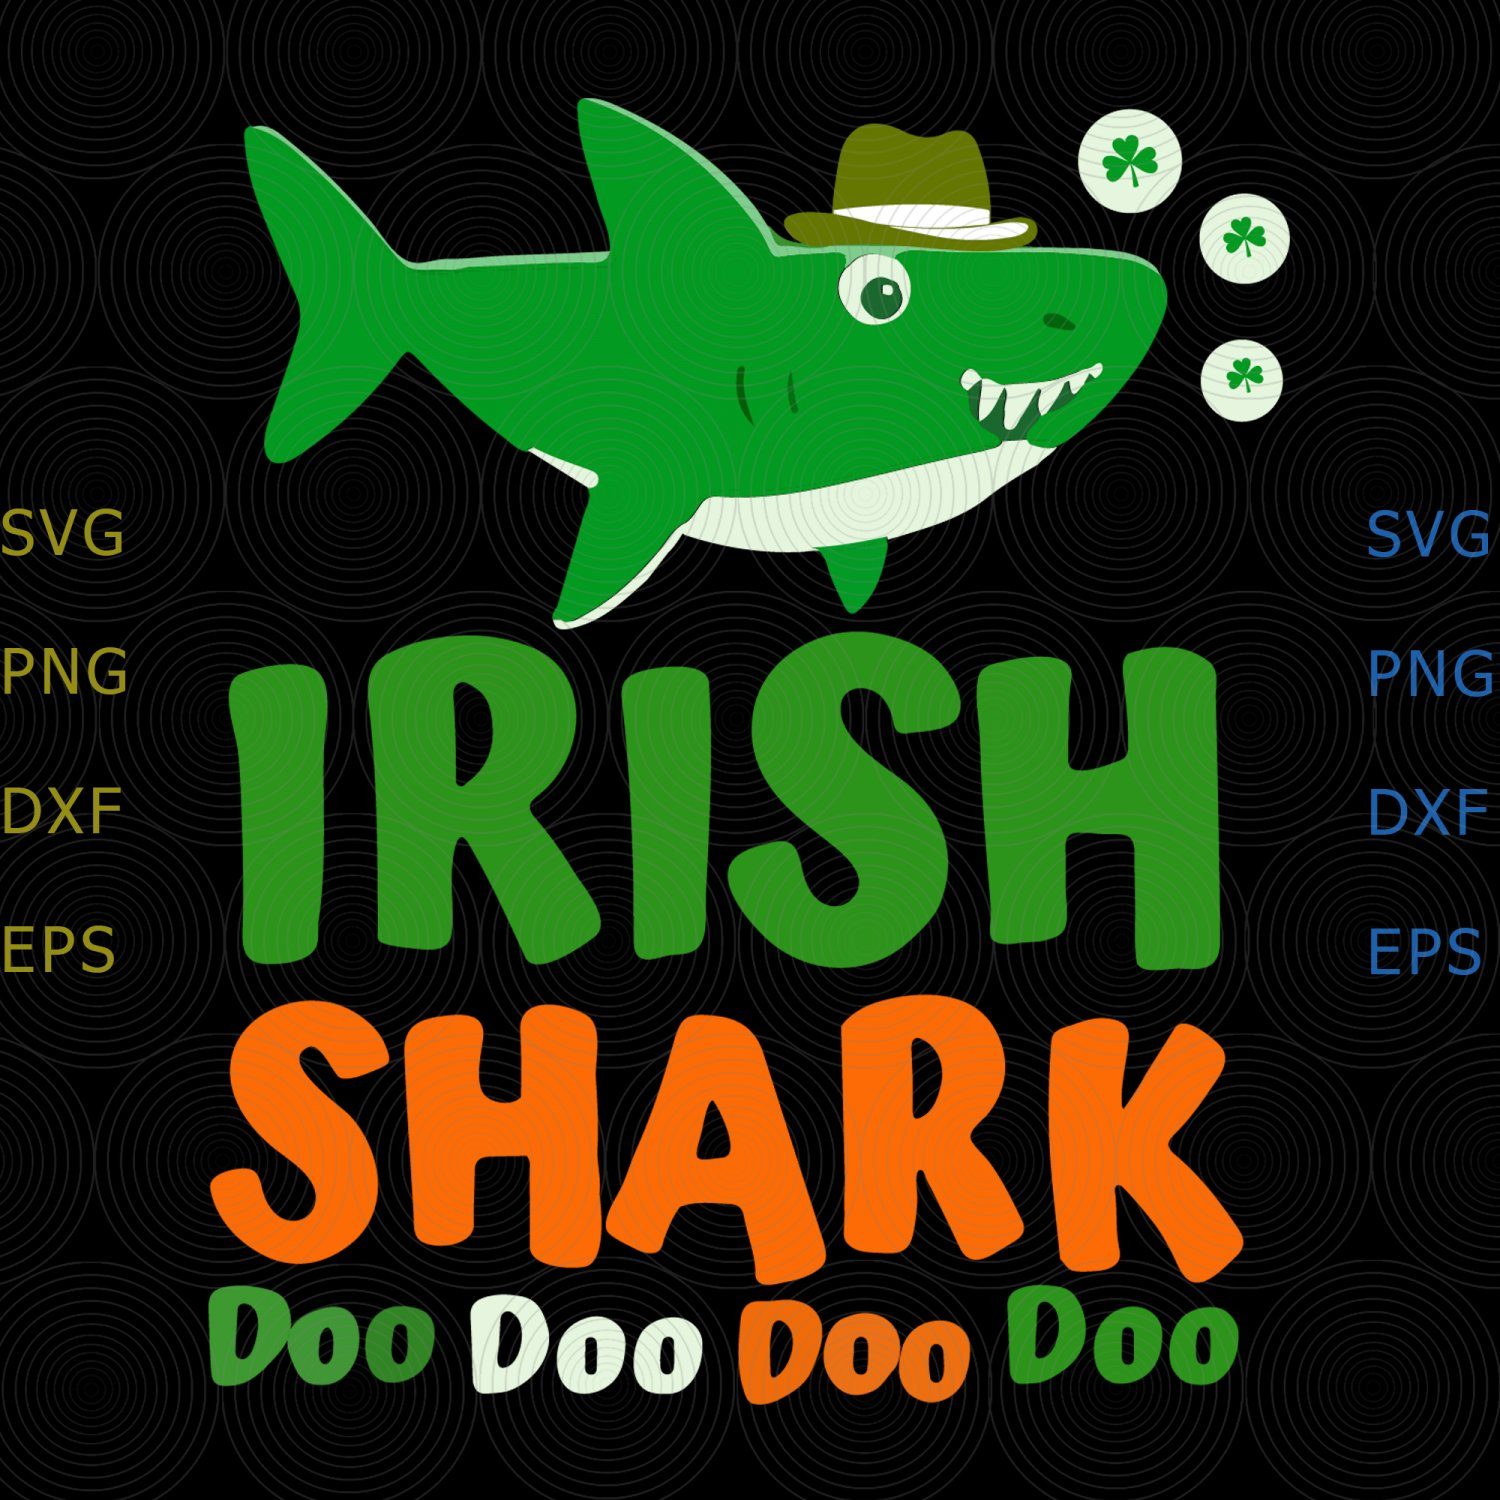 Irish shark doo doo doo svg, Happy St. Patrick's Day SVG, St Patricks Day png dxf svg files